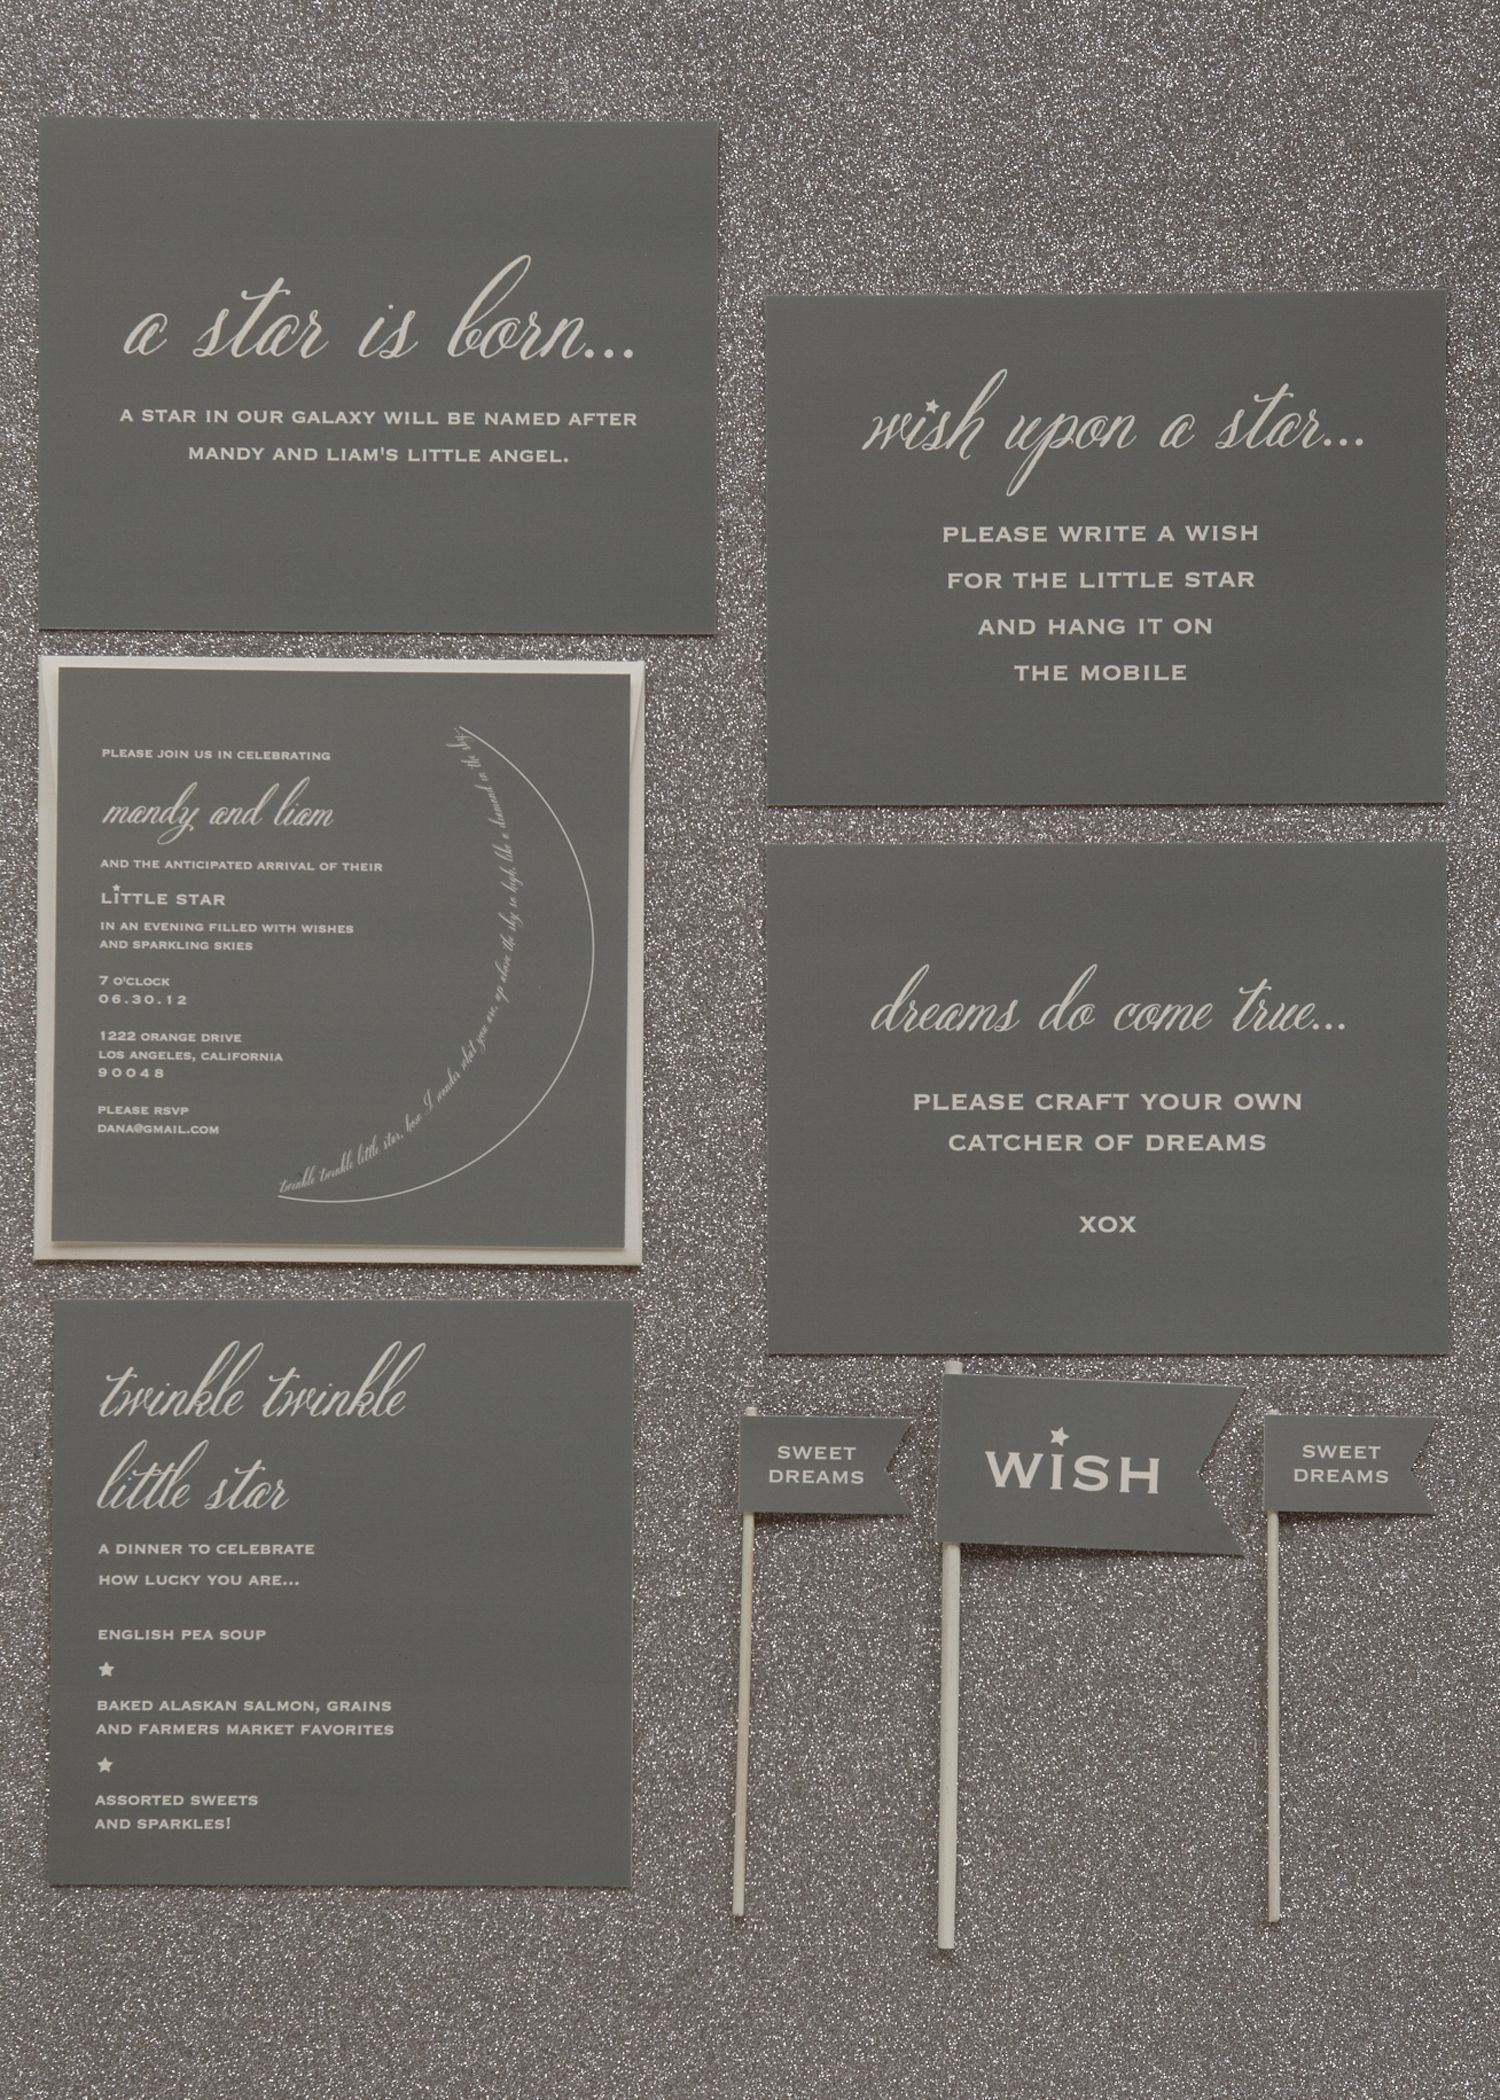 how early should you send out wedding shower invitations%0A Star Light  Star Bright